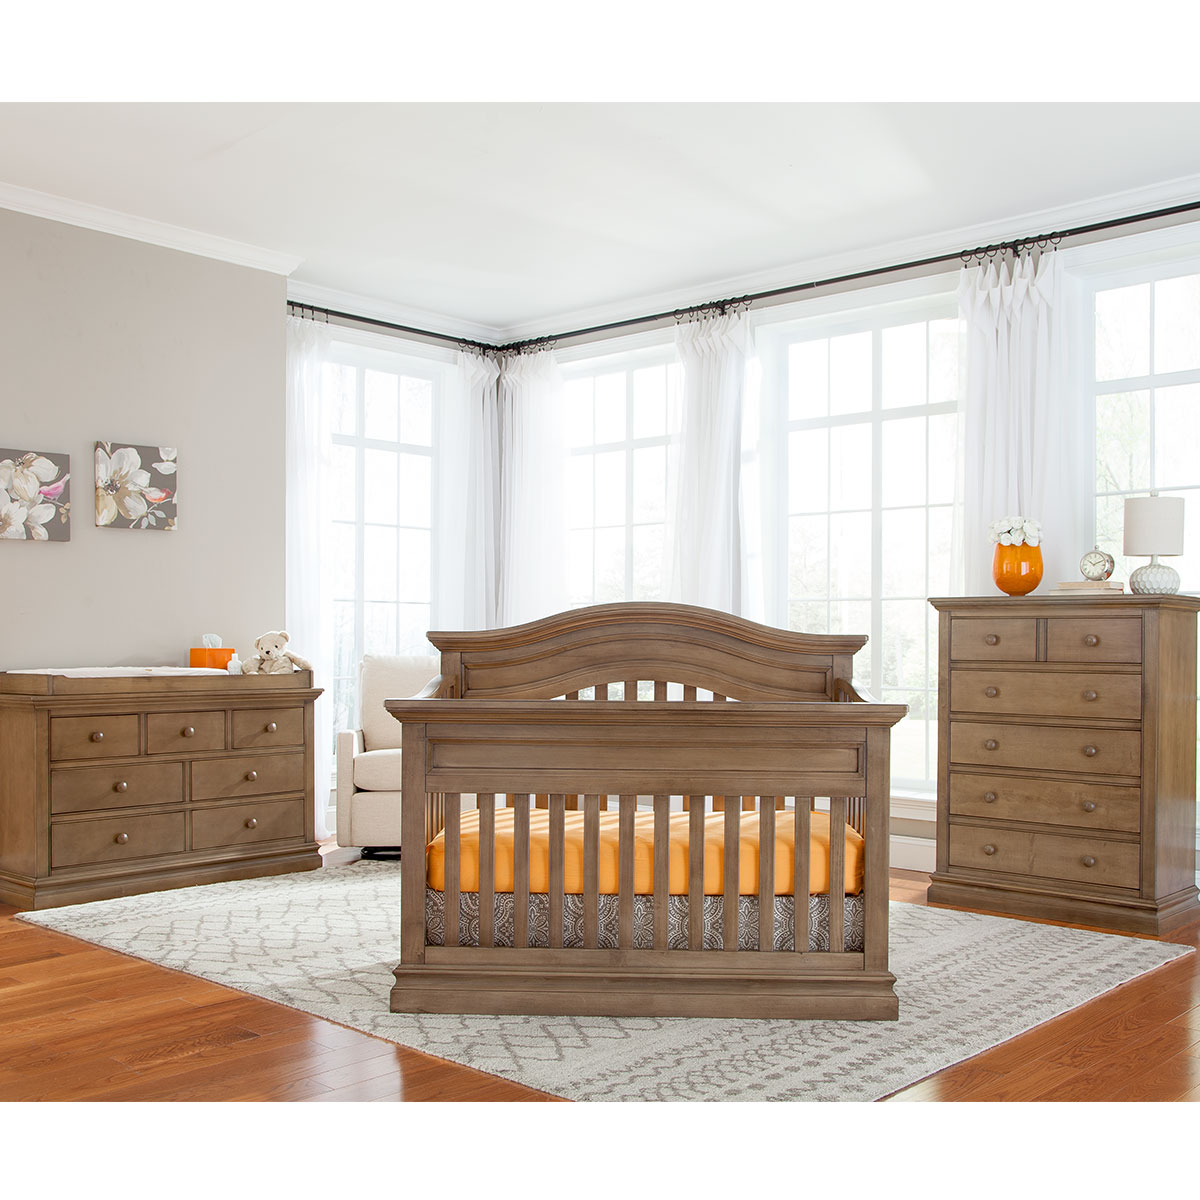 convertible cribs your baby waverly westwood for design lovekidszone tuscan cottage best on crib